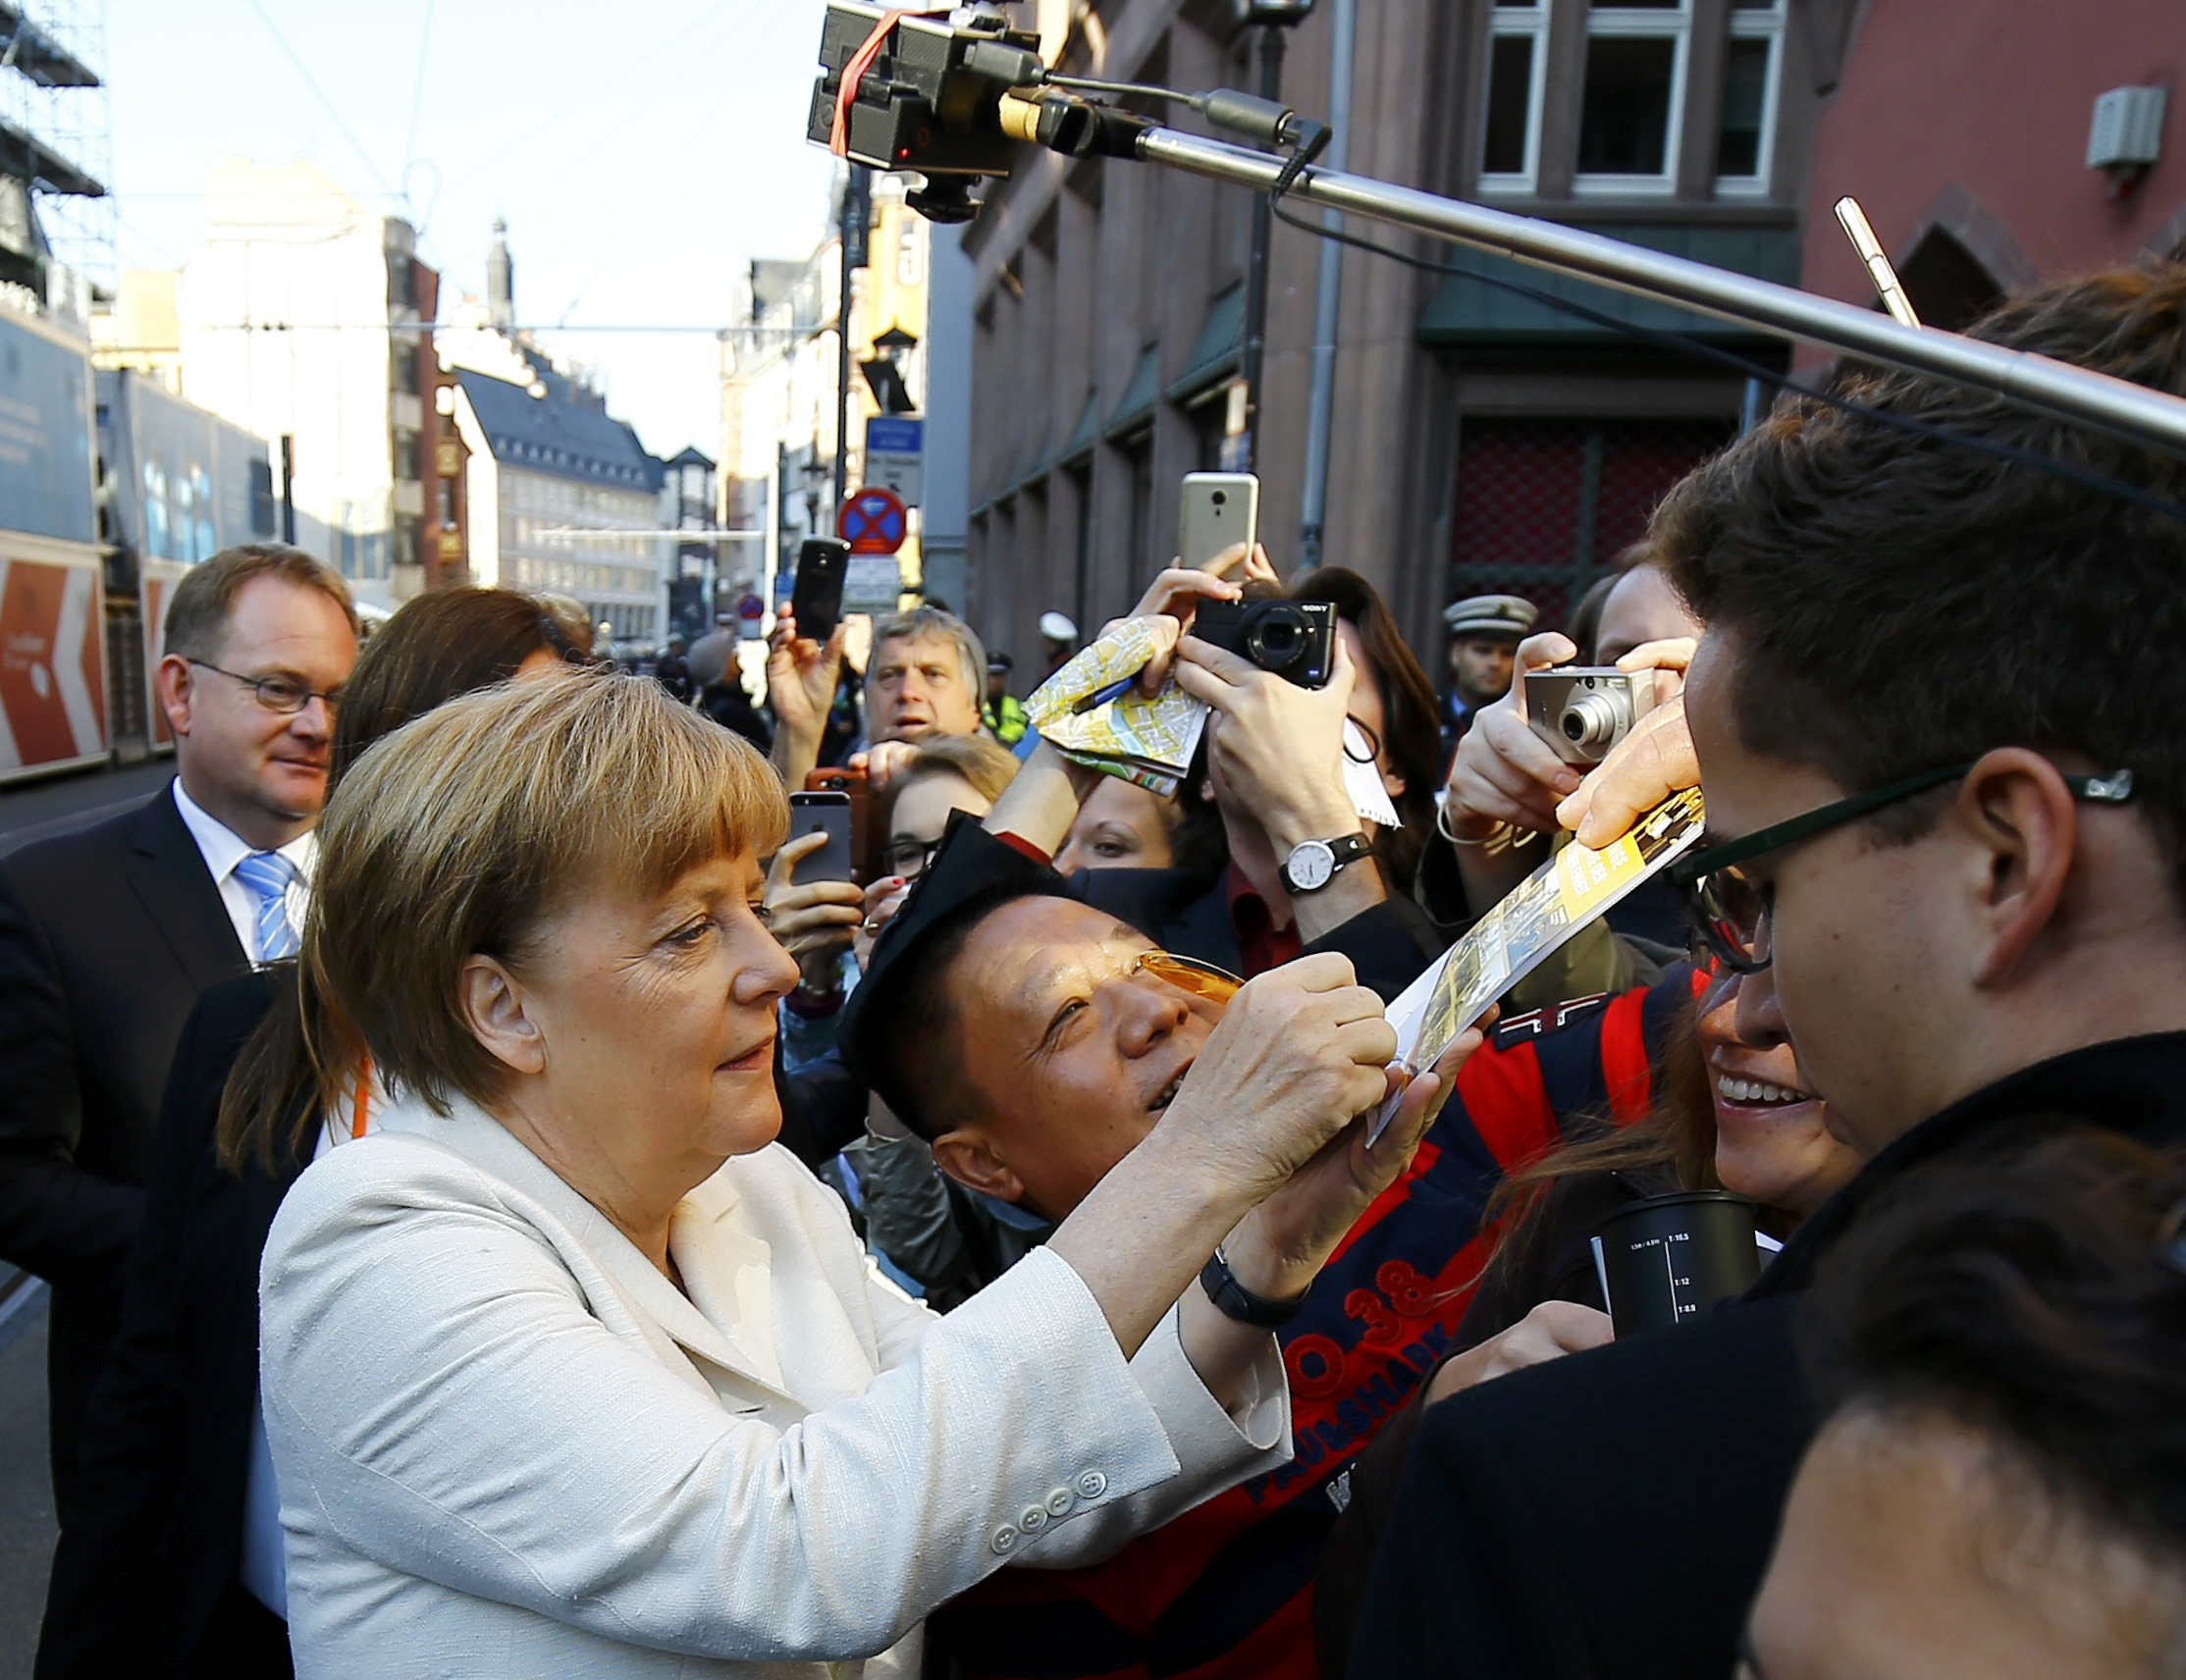 A man takes a selfie as German Chancellor Angela Merkel signs an autograph in Frankfurt, Germany, October 3, 2015. Germany's political leaders celebrate the country's 25th anniversary since the reunification of East and West Germany.   REUTERS/Kai Pfaffenbach